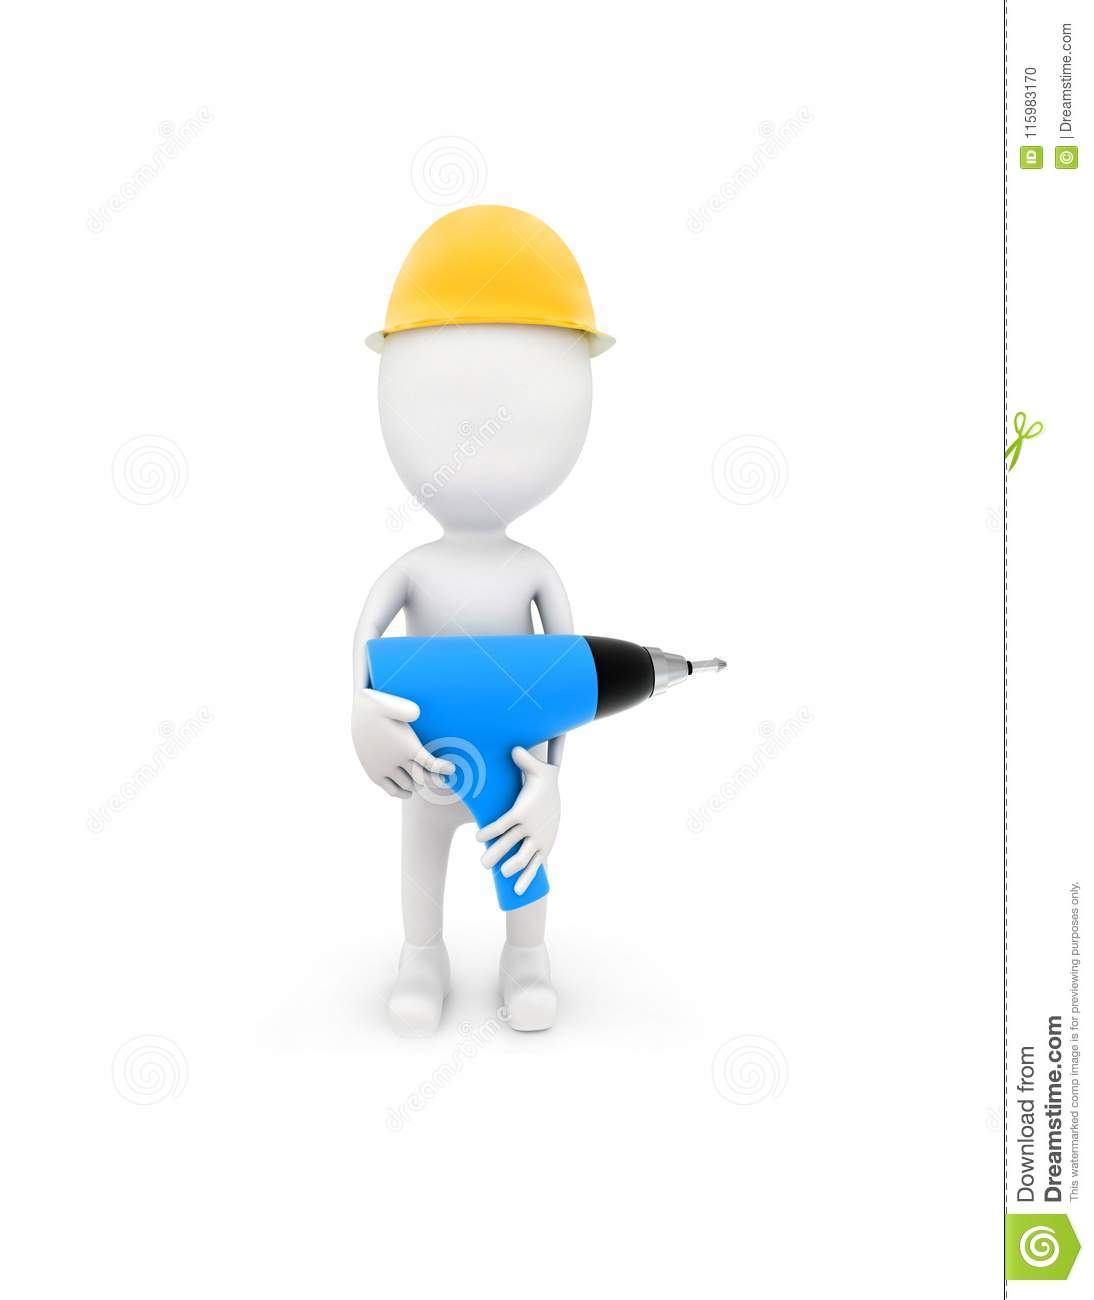 3d man wearing safety cap and holding a electric driller in his